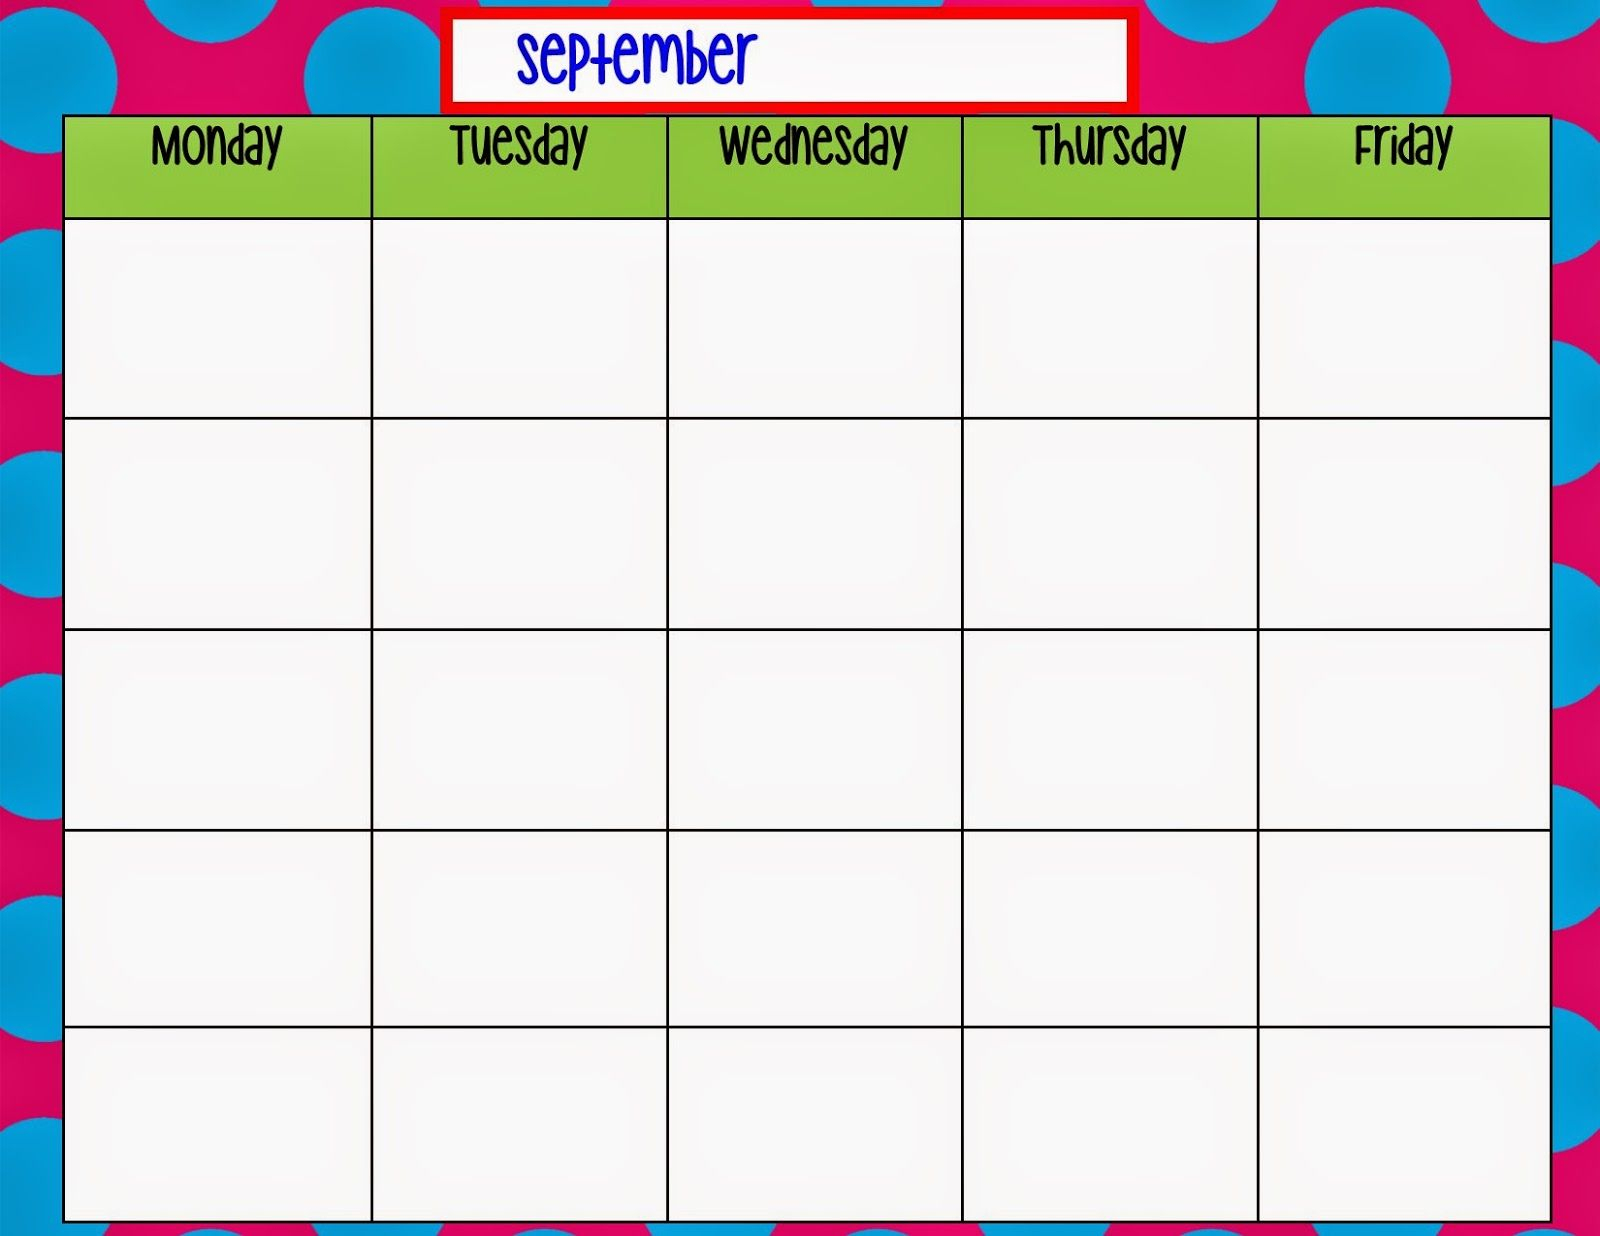 Monday Through Friday Calendar Template | Preschool | Weekly intended for Weekly Blank Calendar Monday Through Friday